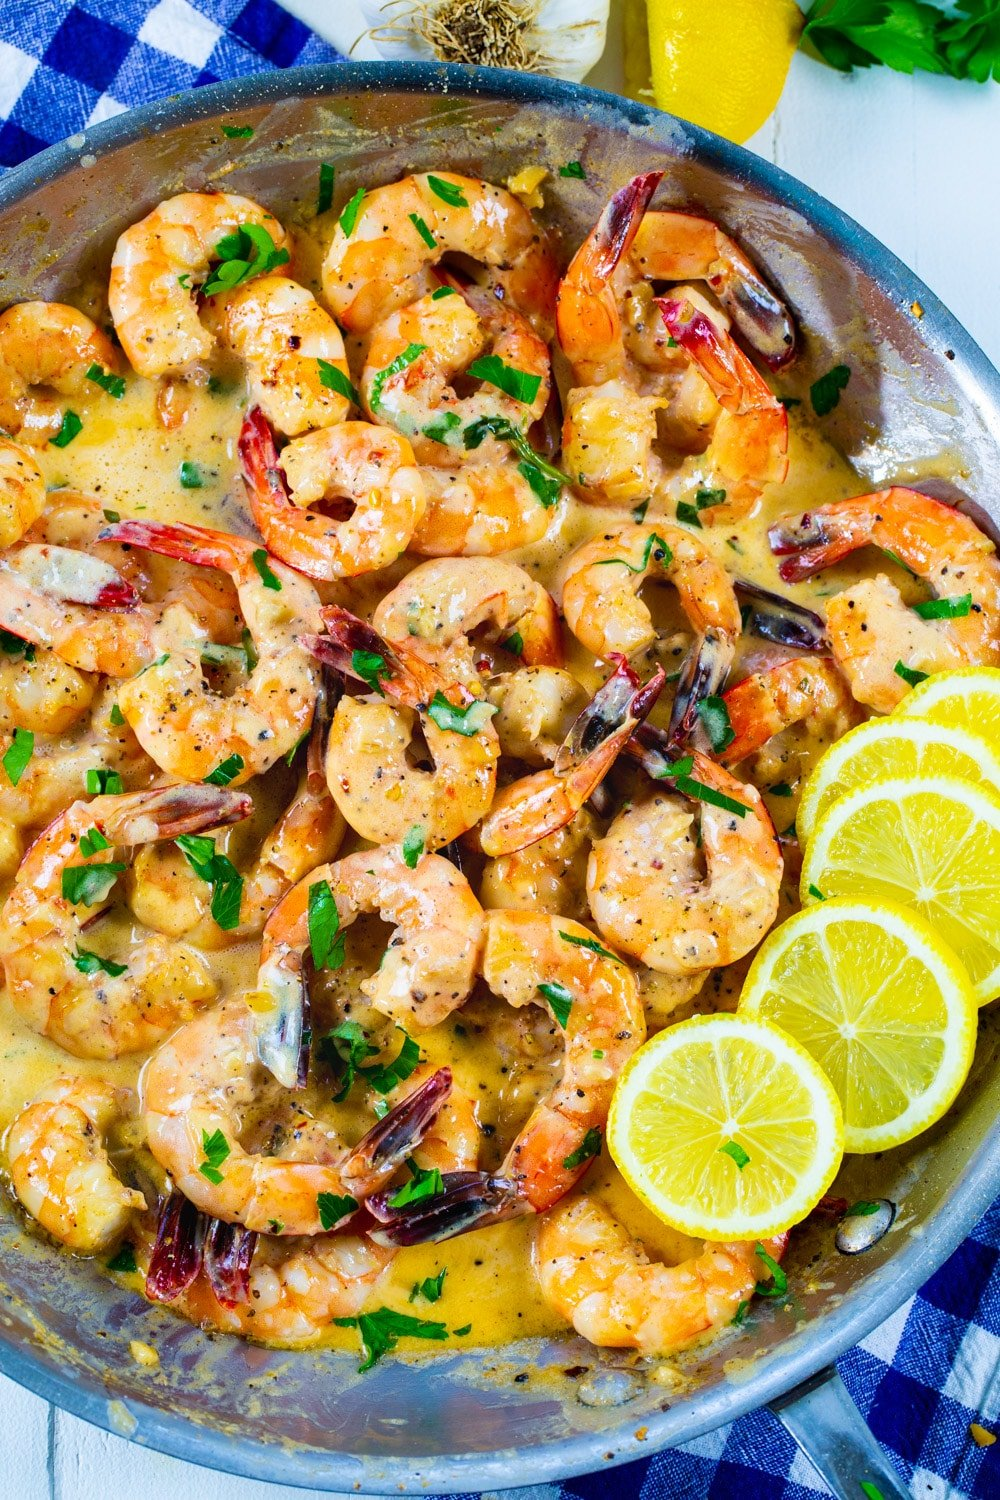 Cooked shrimp in a skillet with lemon slices.